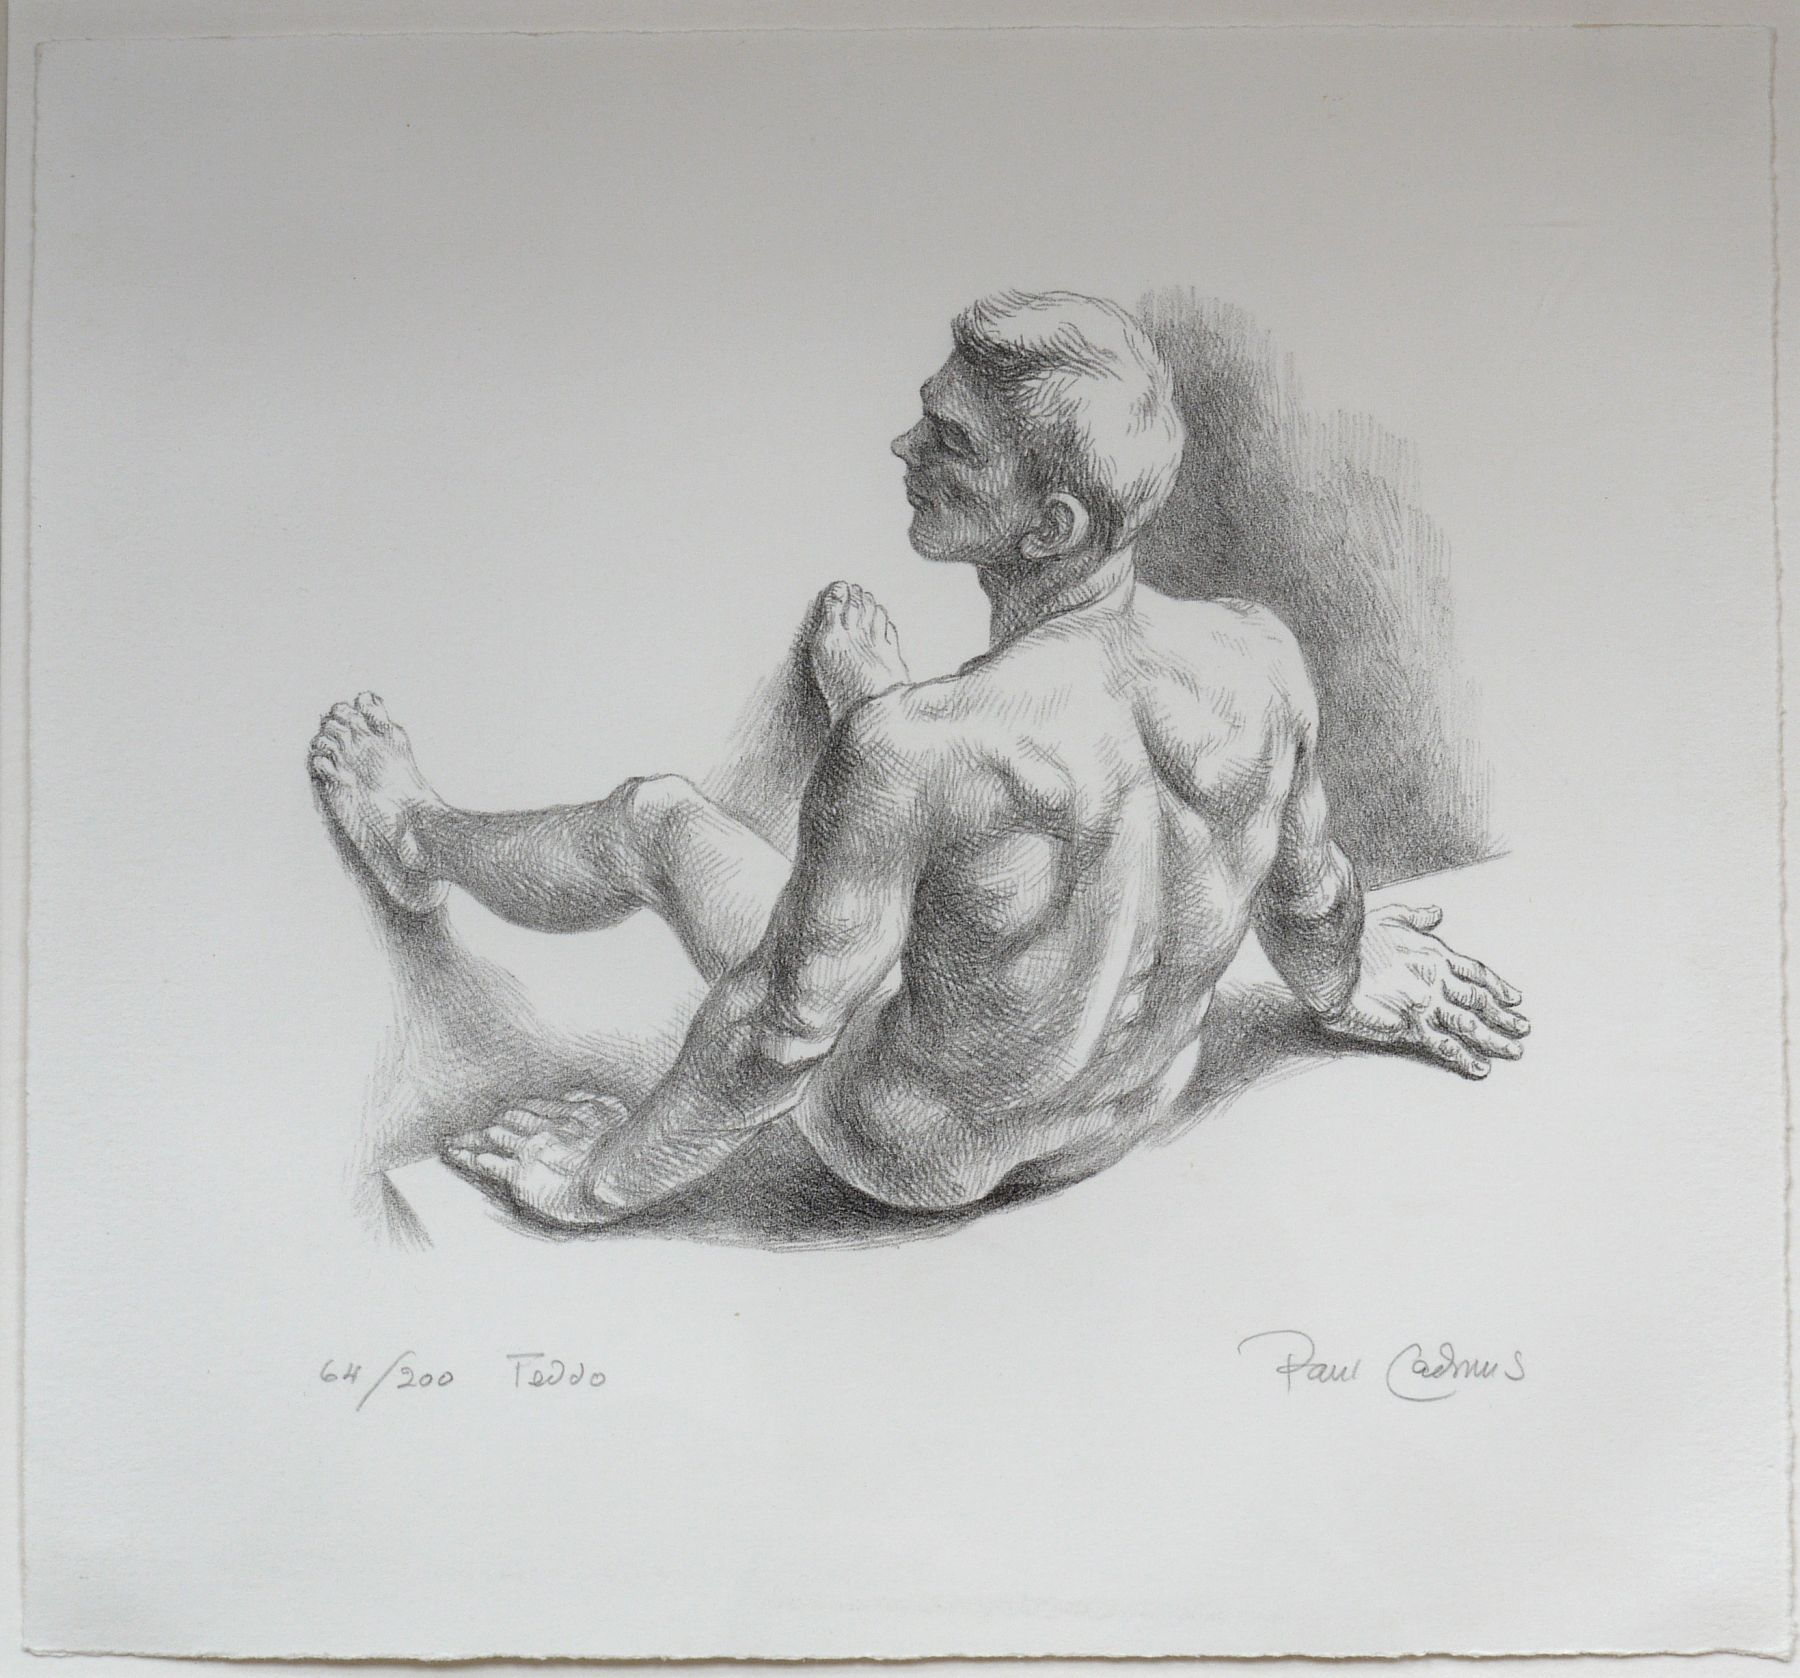 Teddo, 64/200, 1985 Lithograph on paper